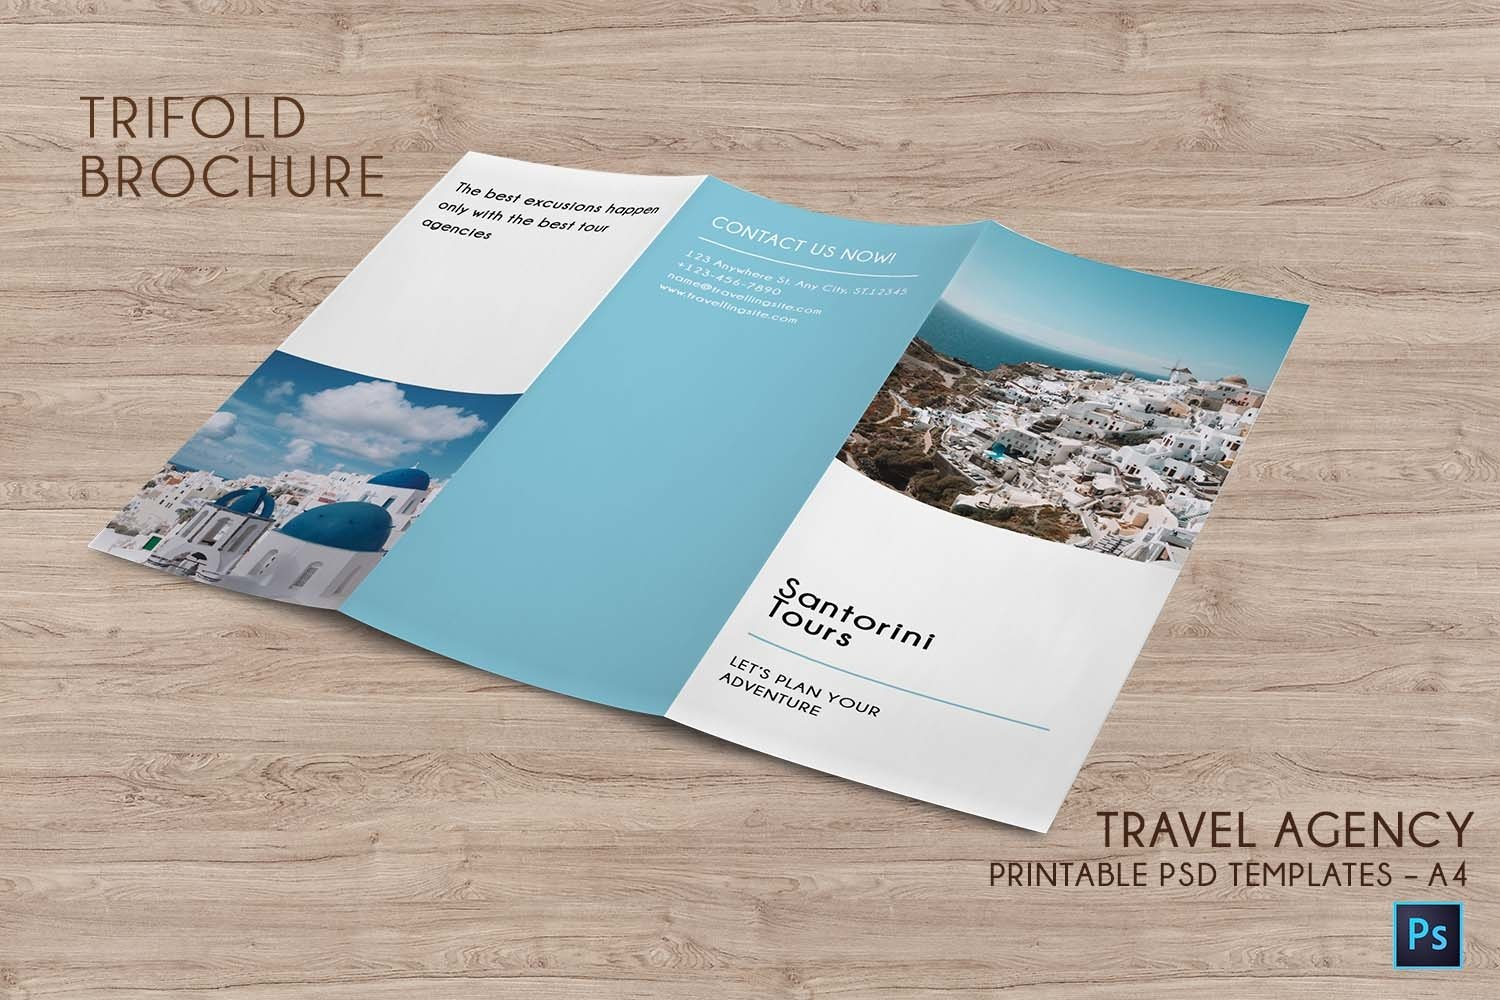 Trifold Agency Travel Brochure Editable PSD Templates example image 4